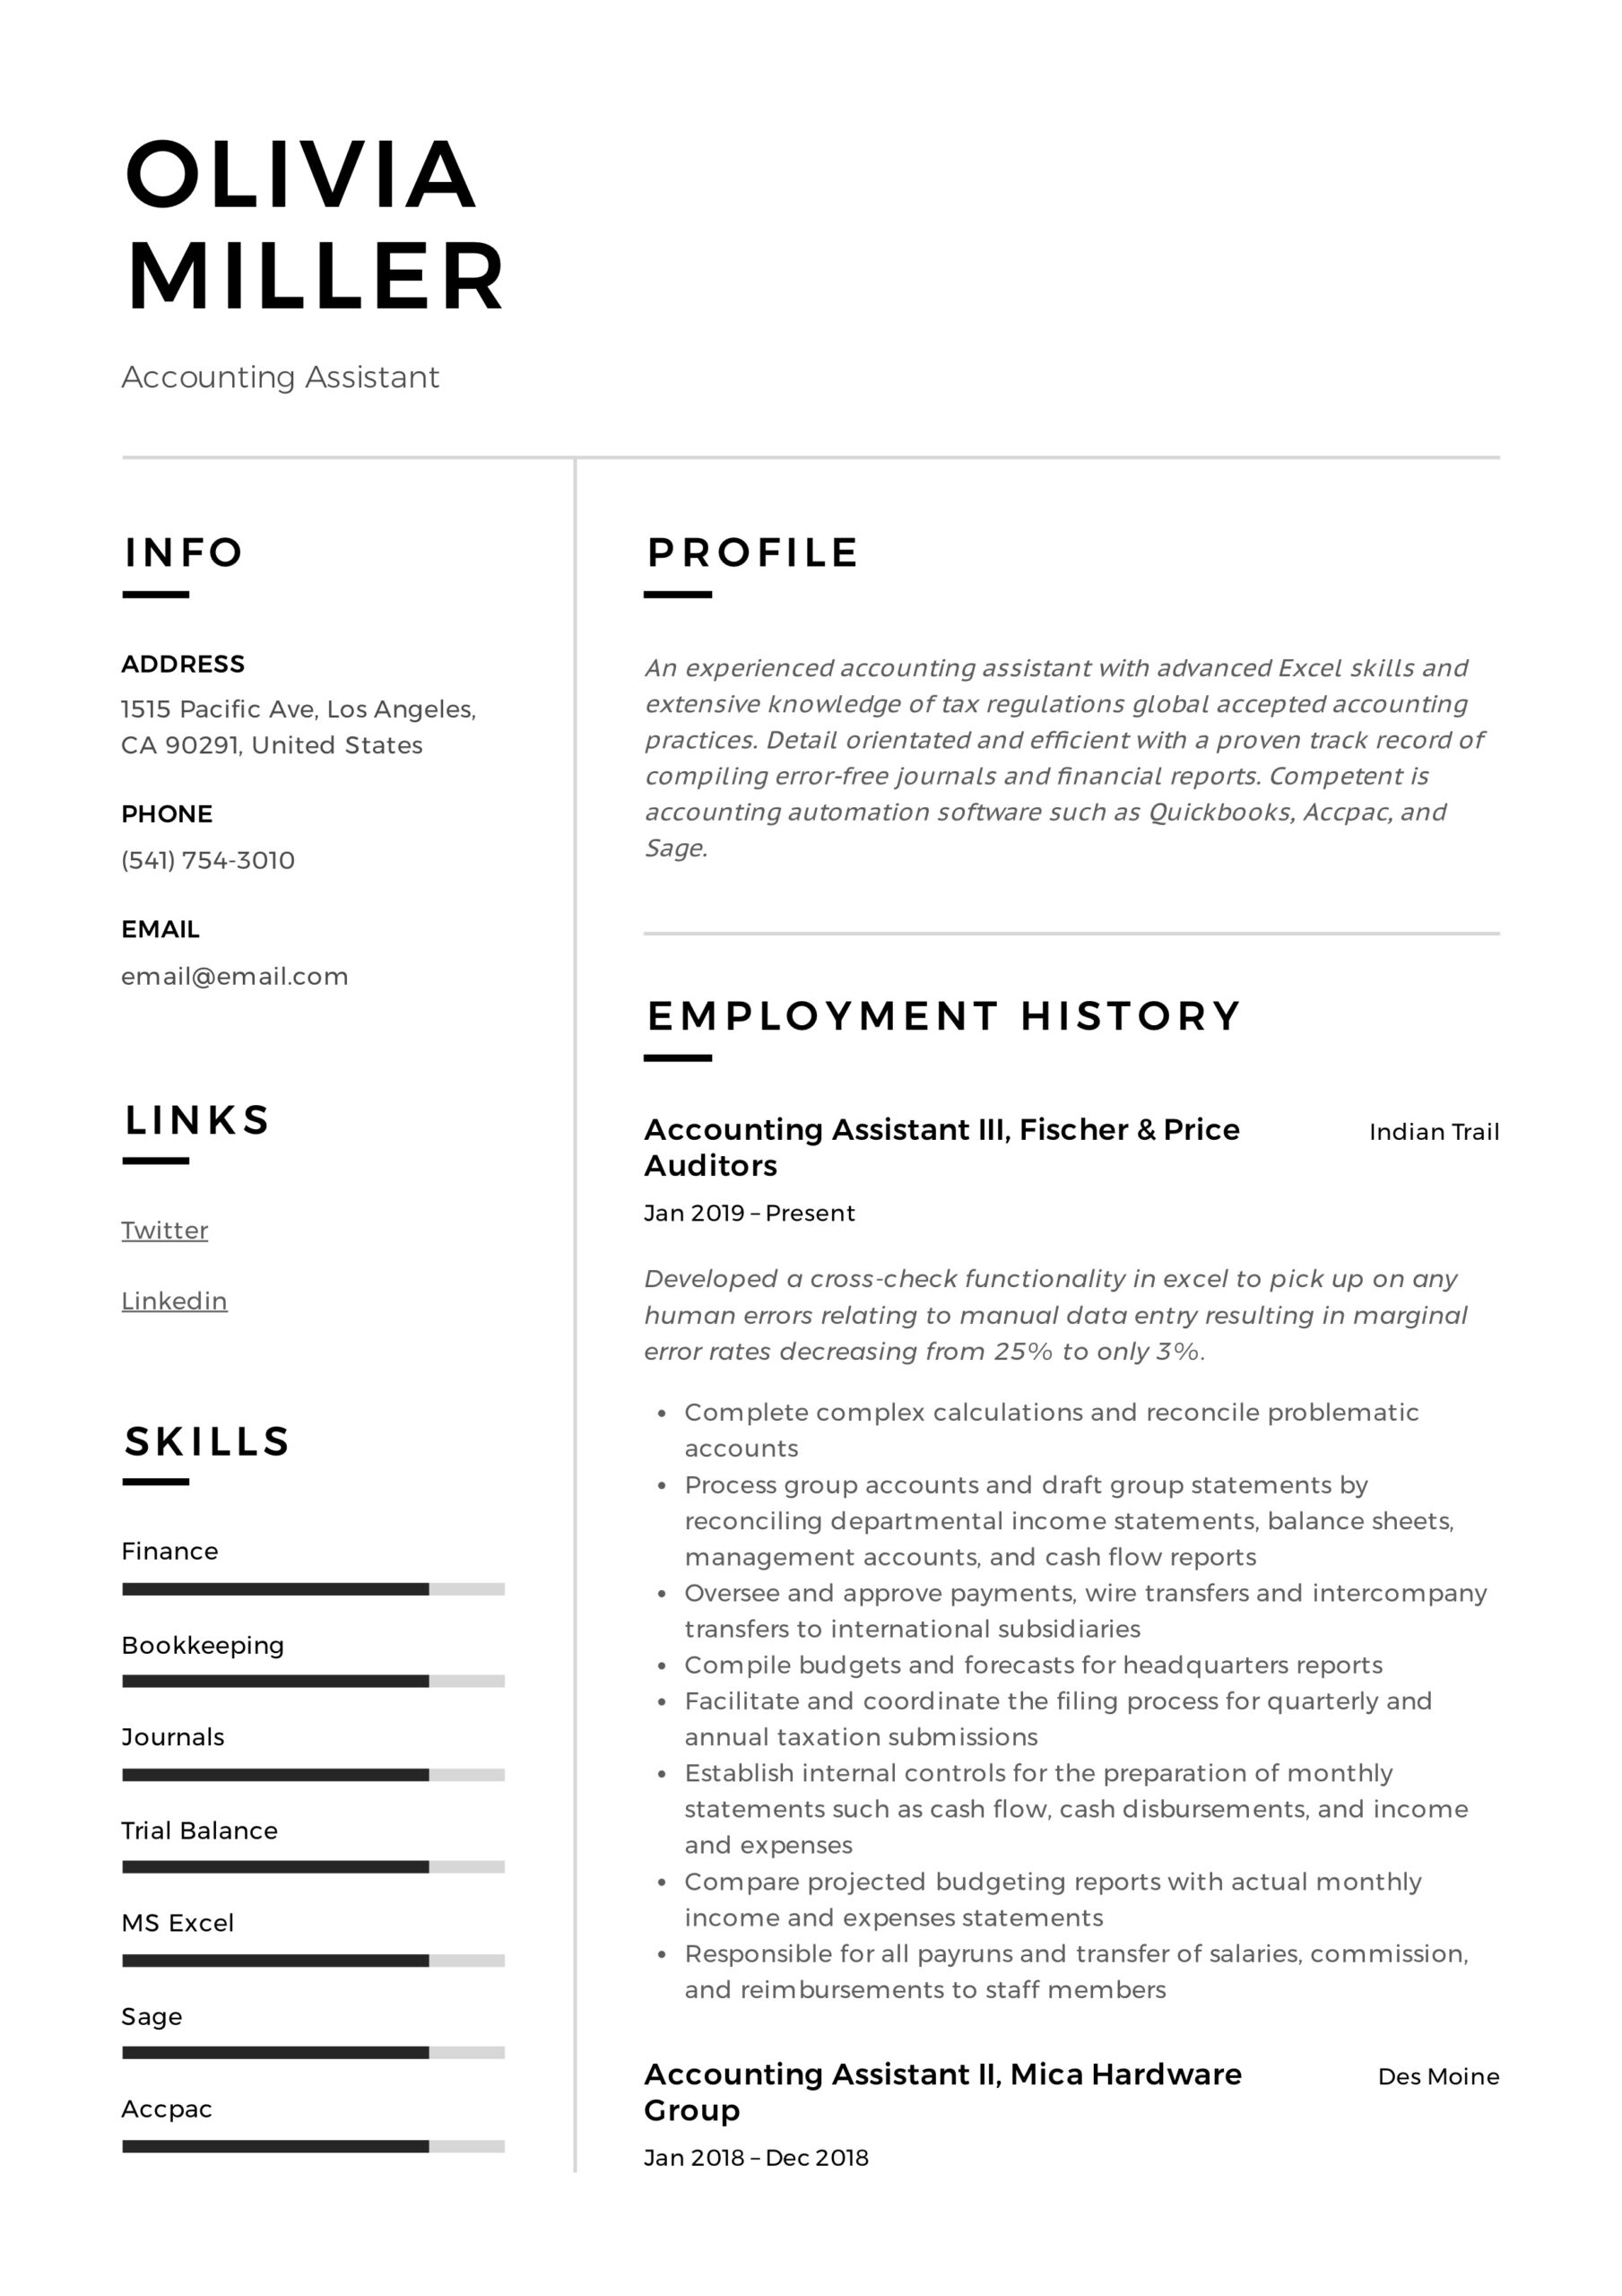 accounting assistant resume writing guide examples pdf accountant achievements free Resume Assistant Accountant Achievements Resume